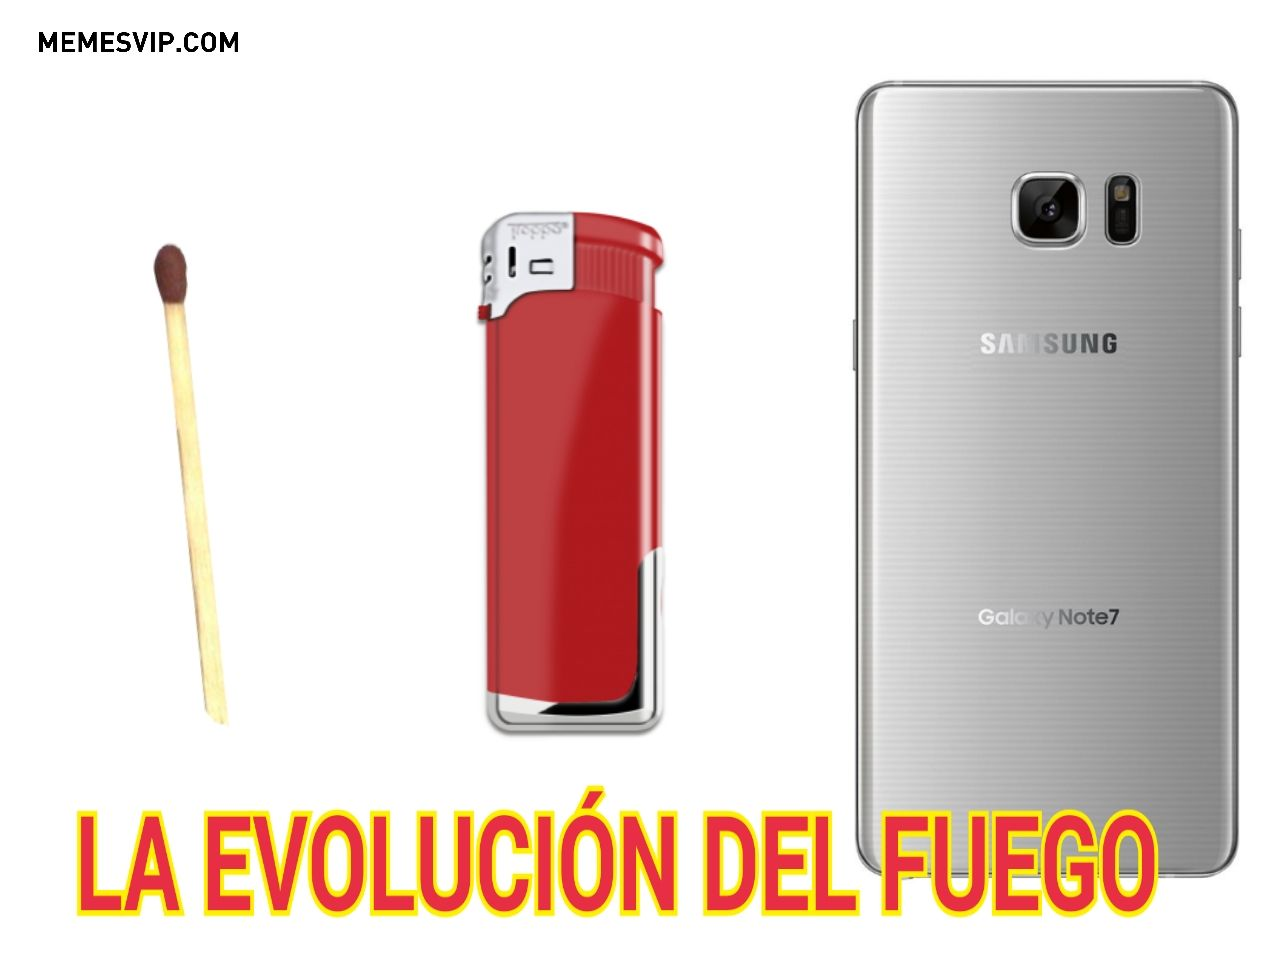 Samsung Galaxy Note Boom 7